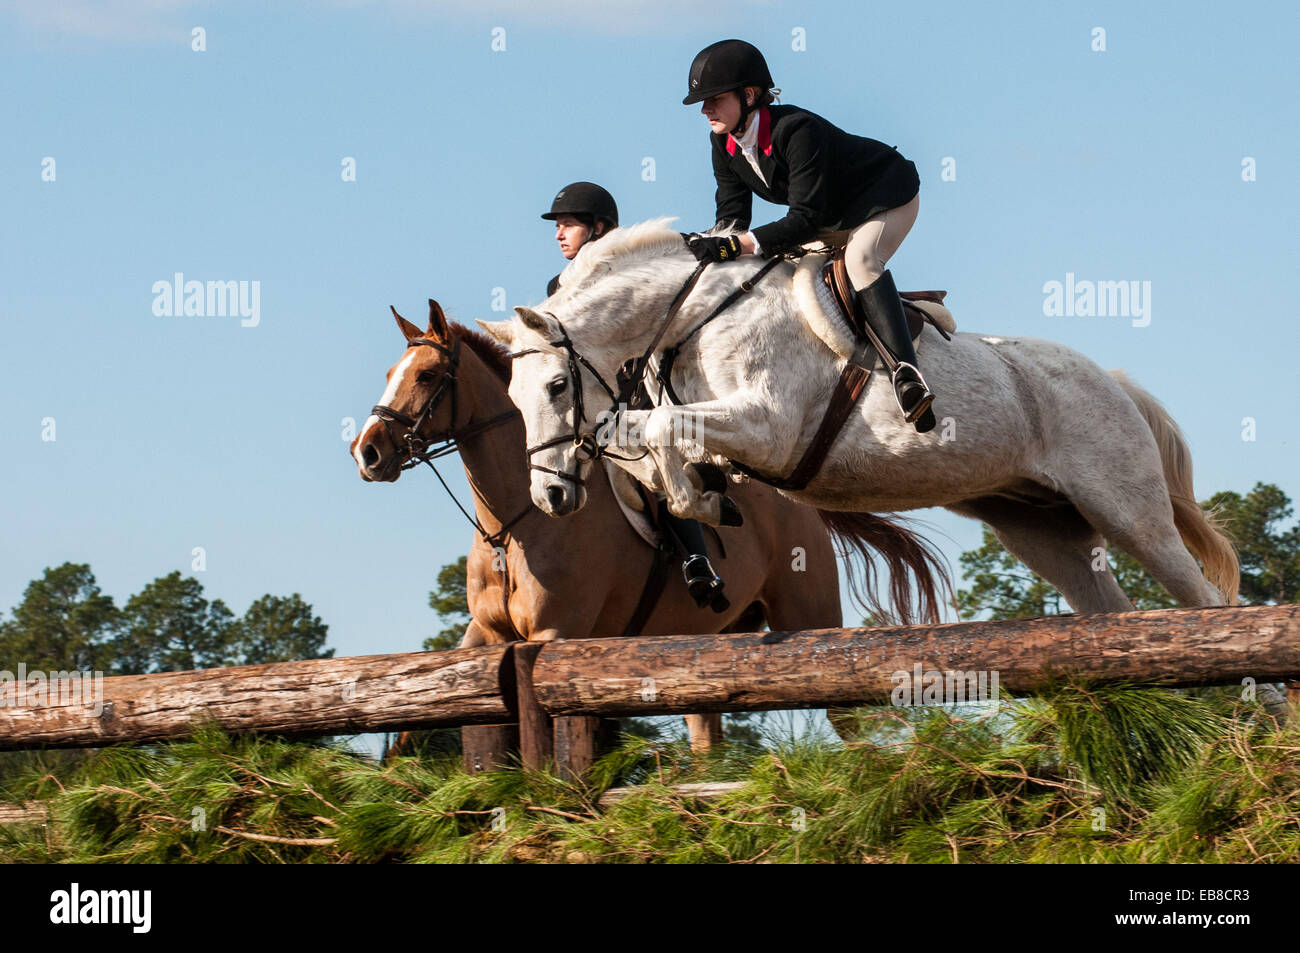 Mount Foster Stock Photos & Mount Foster Stock Images - Alamy